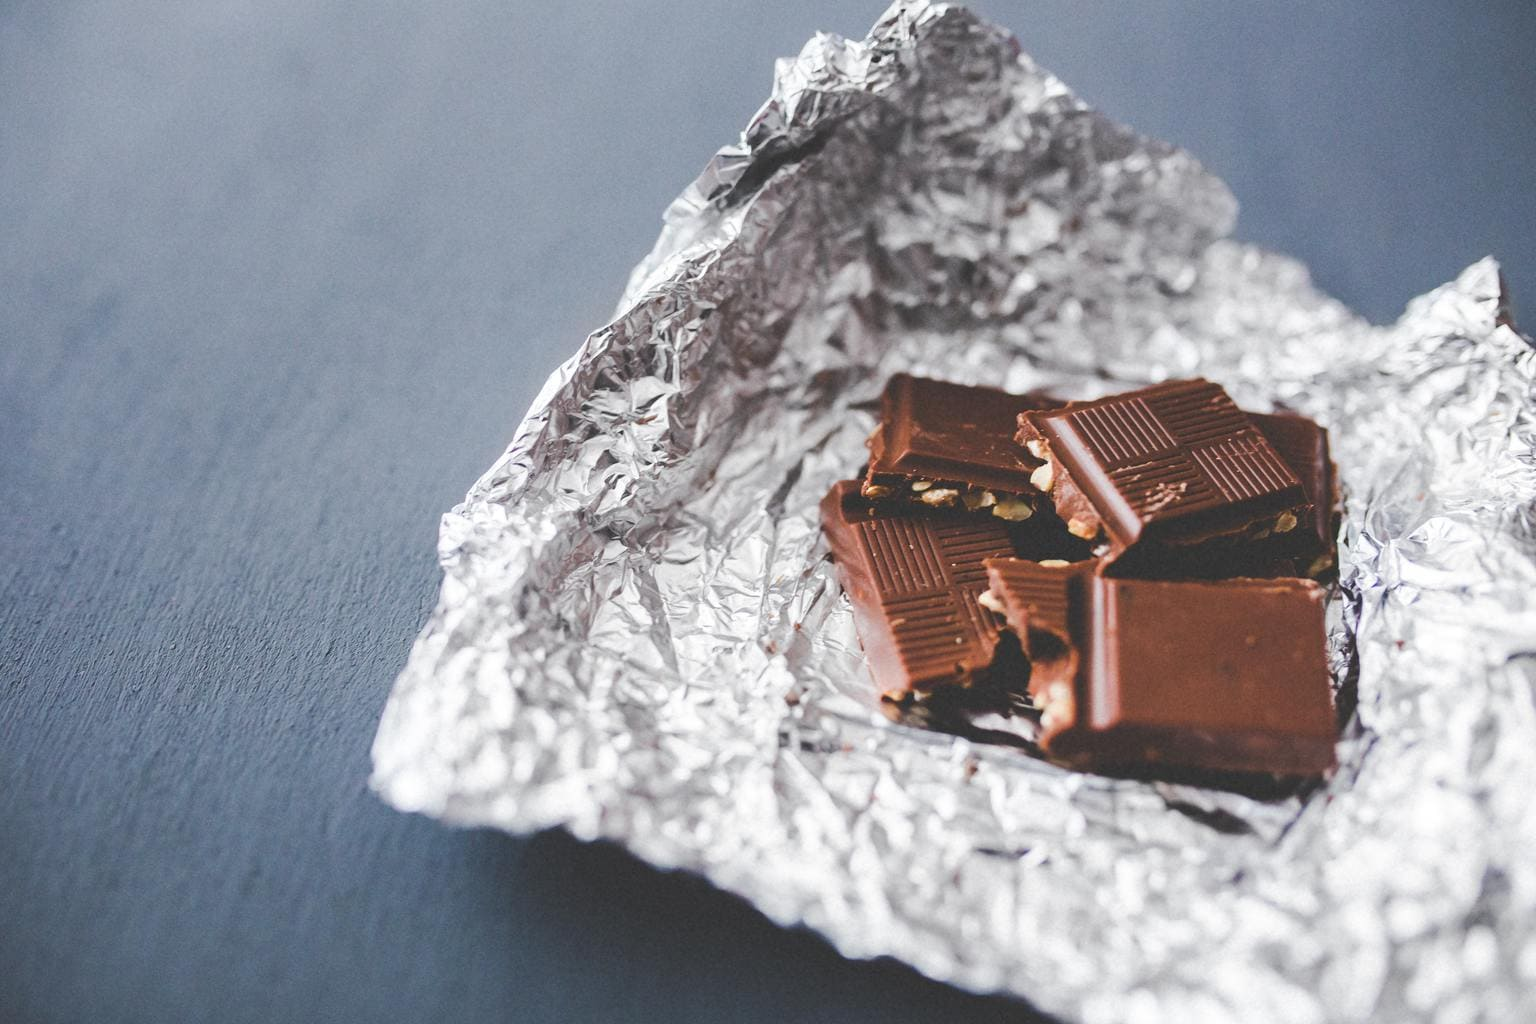 get/give fair trade or ethical chocolate